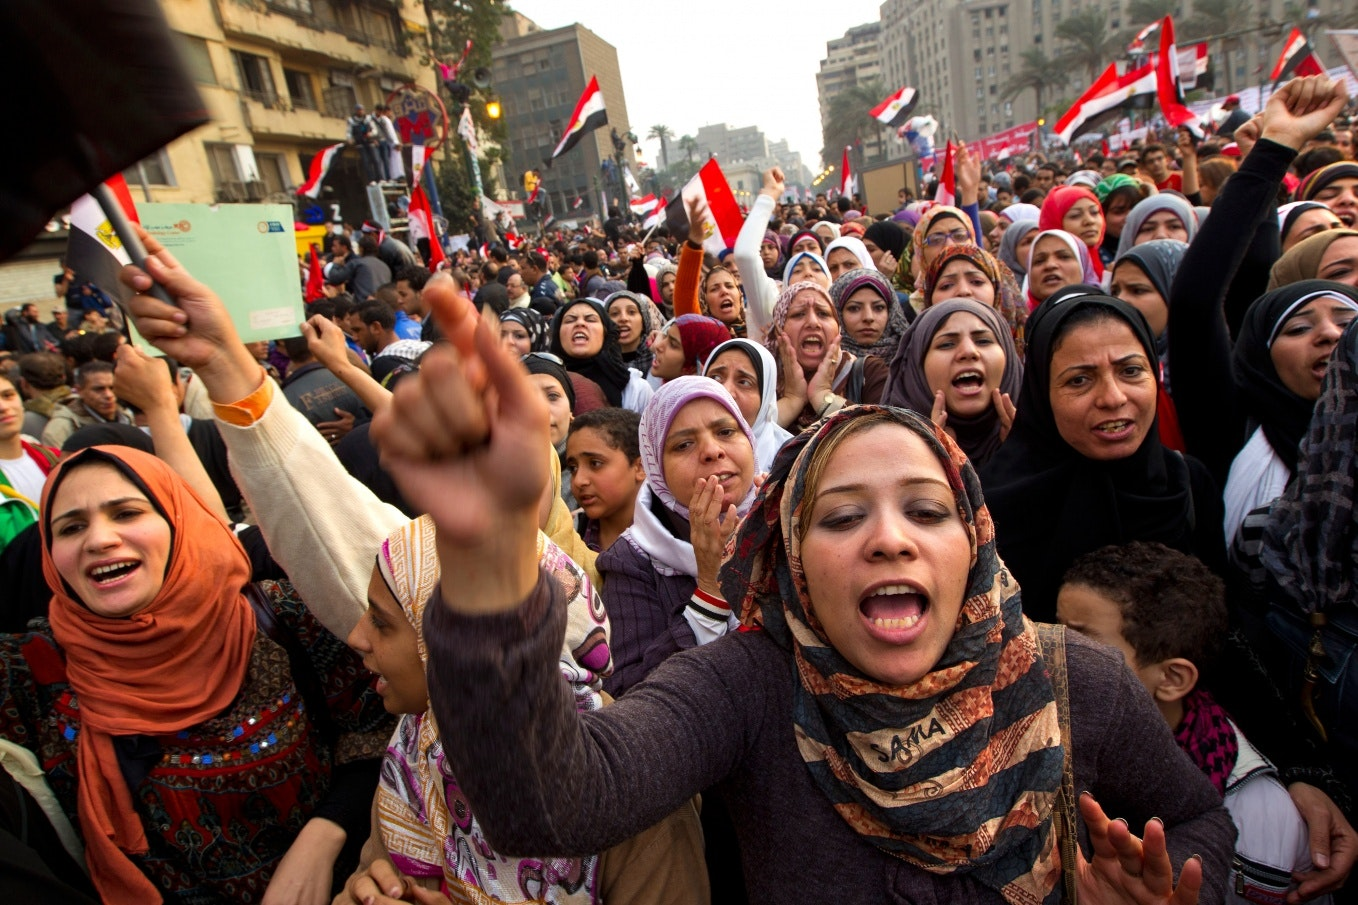 Hundreds of women demonstrators marching